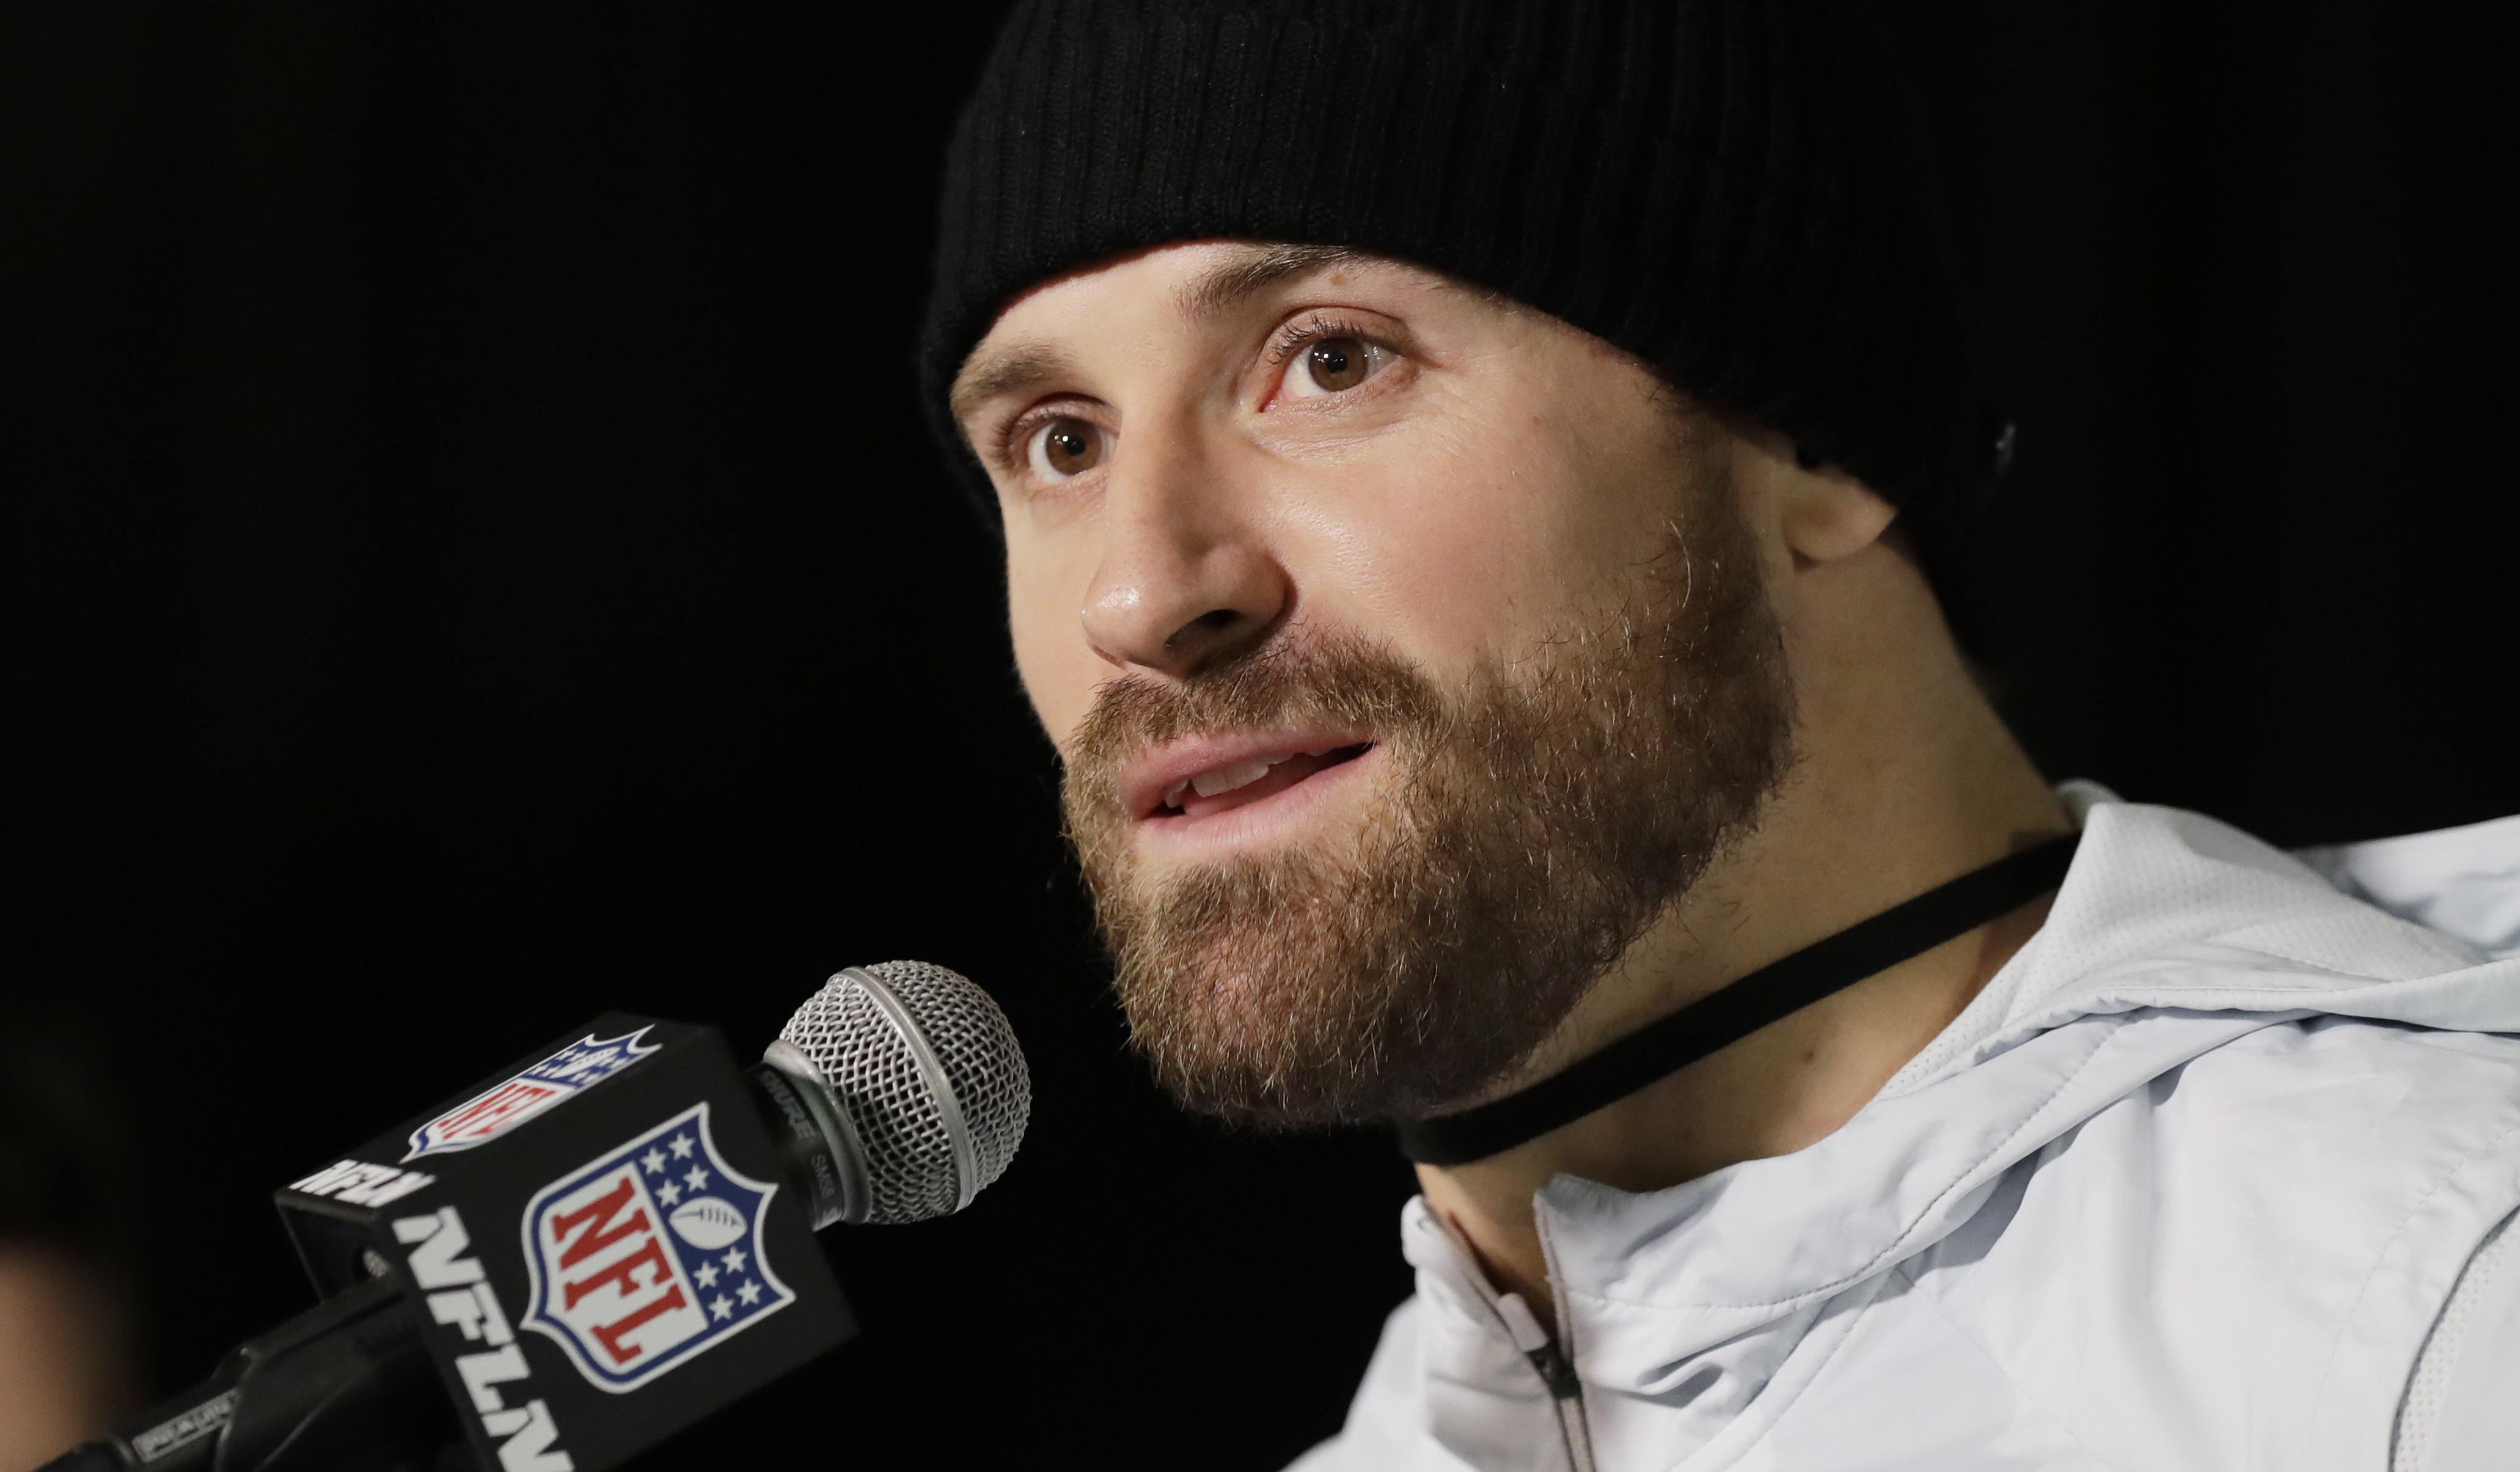 Chris Long is frustrated he did not react to racial unrest until it hit his home town